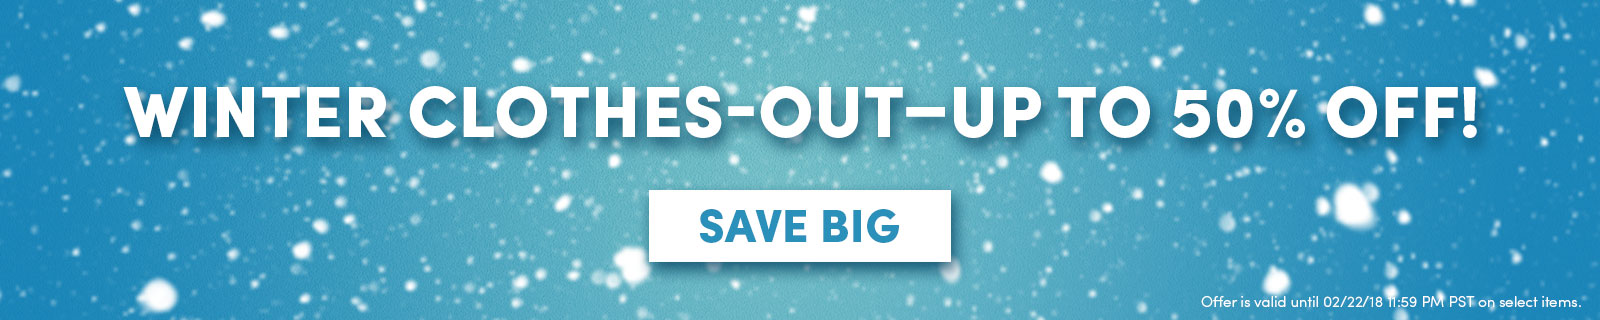 WINTER CLOTHES-OUT–Up to 50% OFF! {Save big]